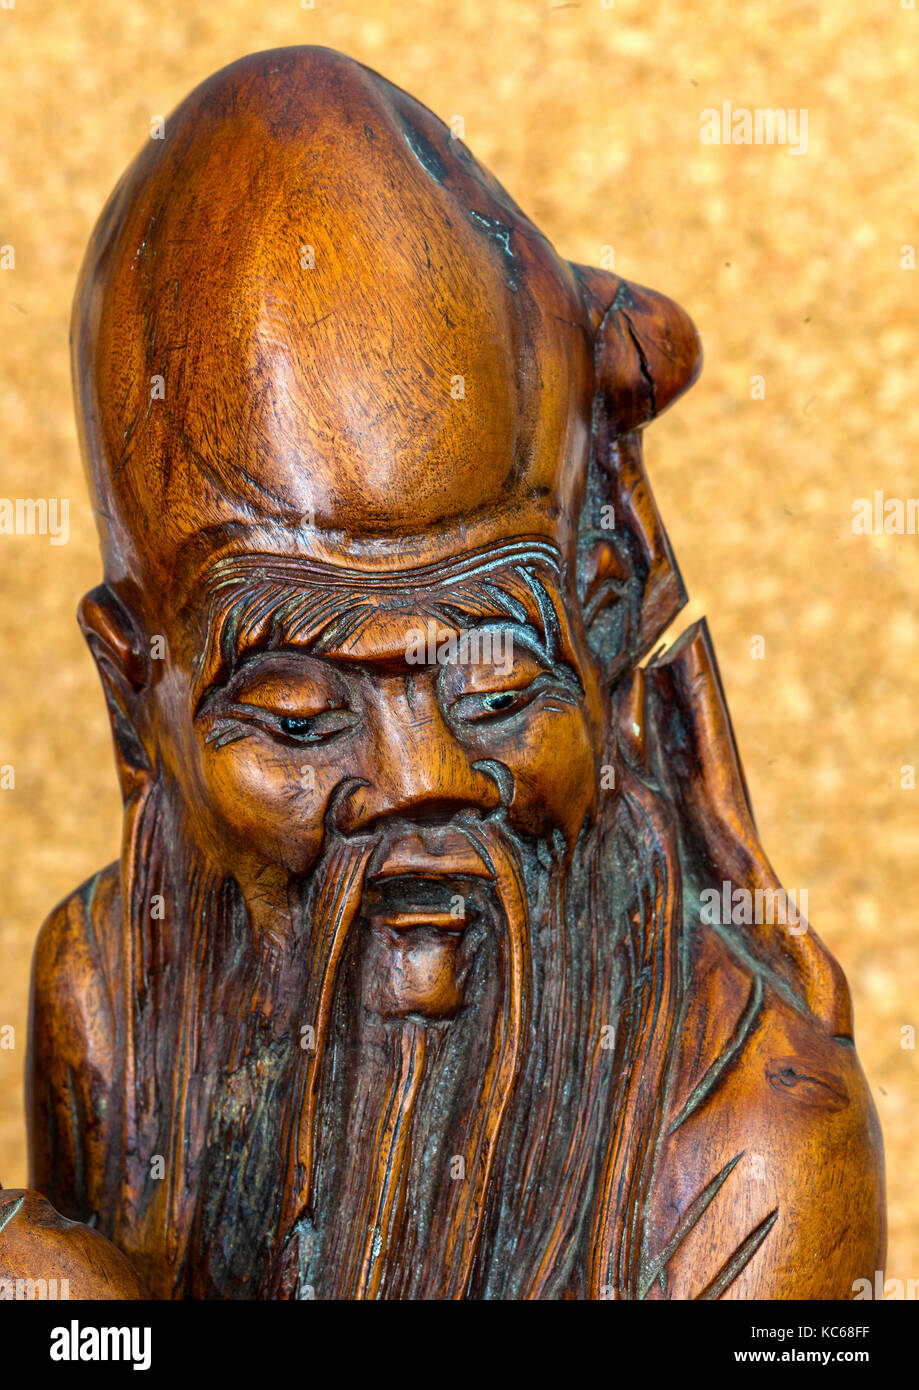 Antique statue of Chinese man with beard - Stock Image